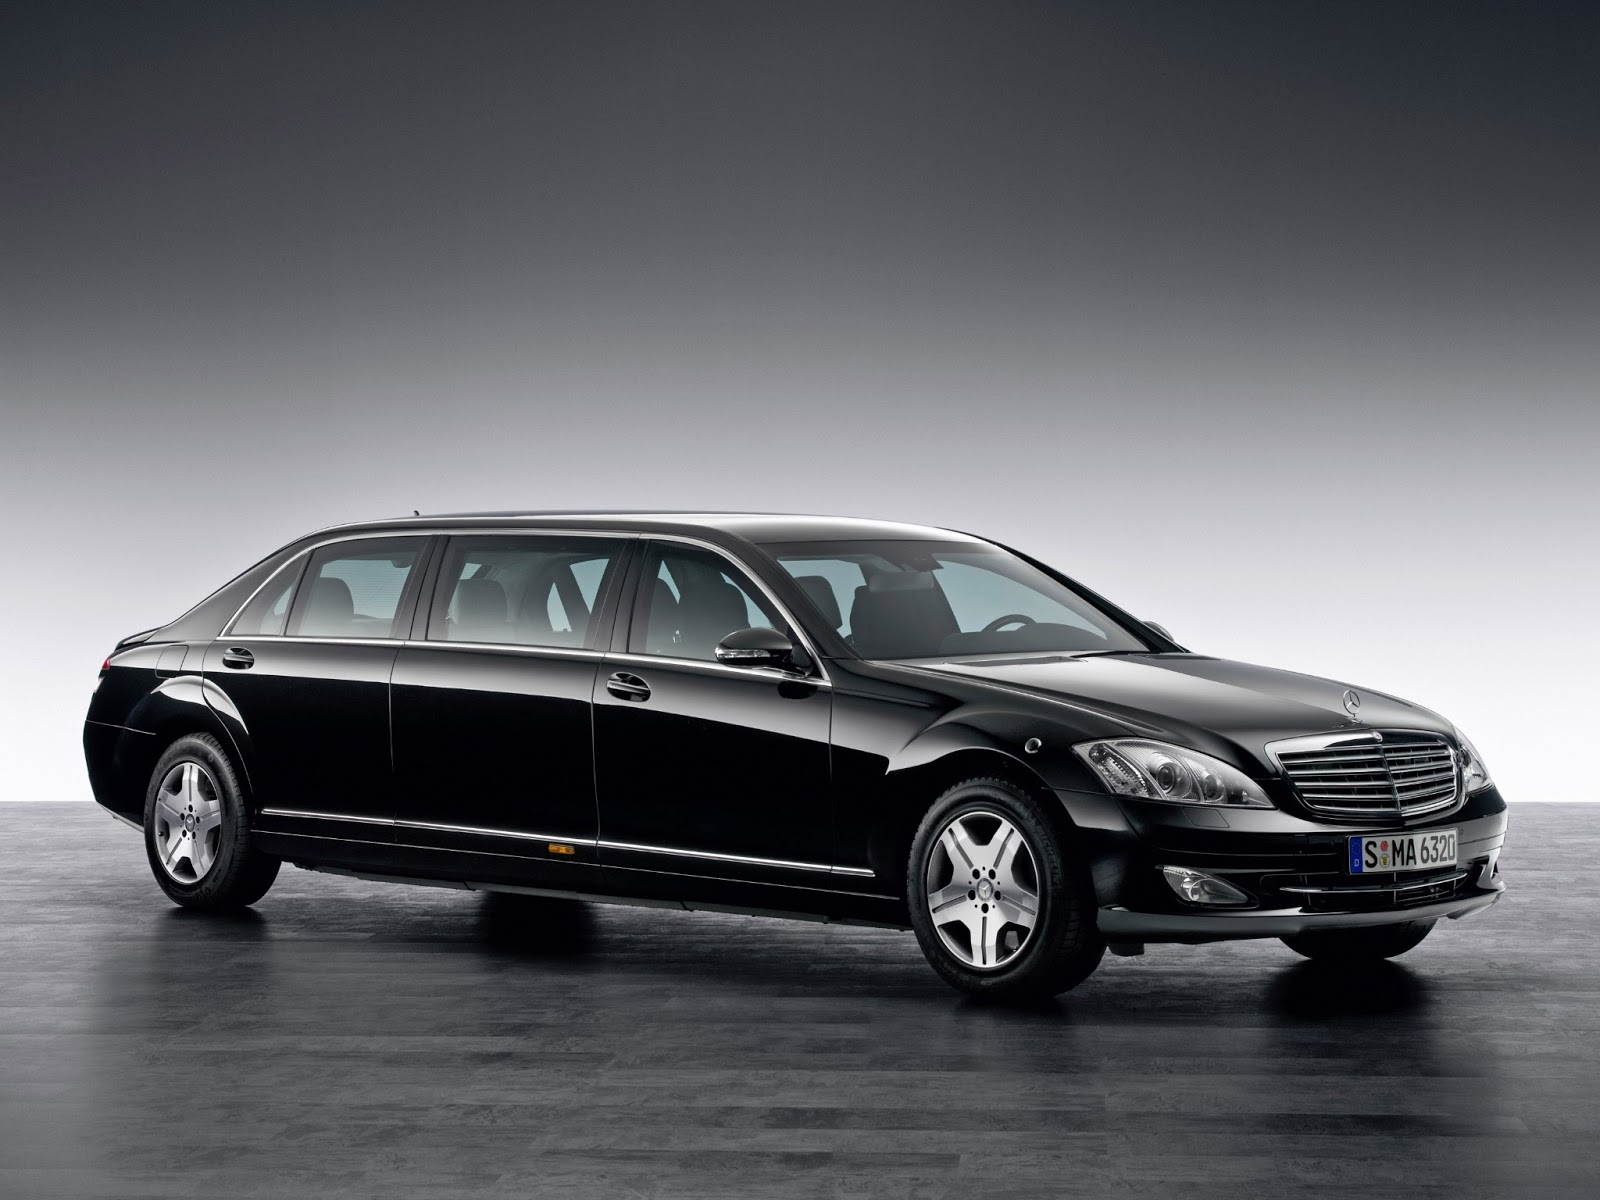 Cars GTO Mercedes Benz S 600 Pullman Guard Interior